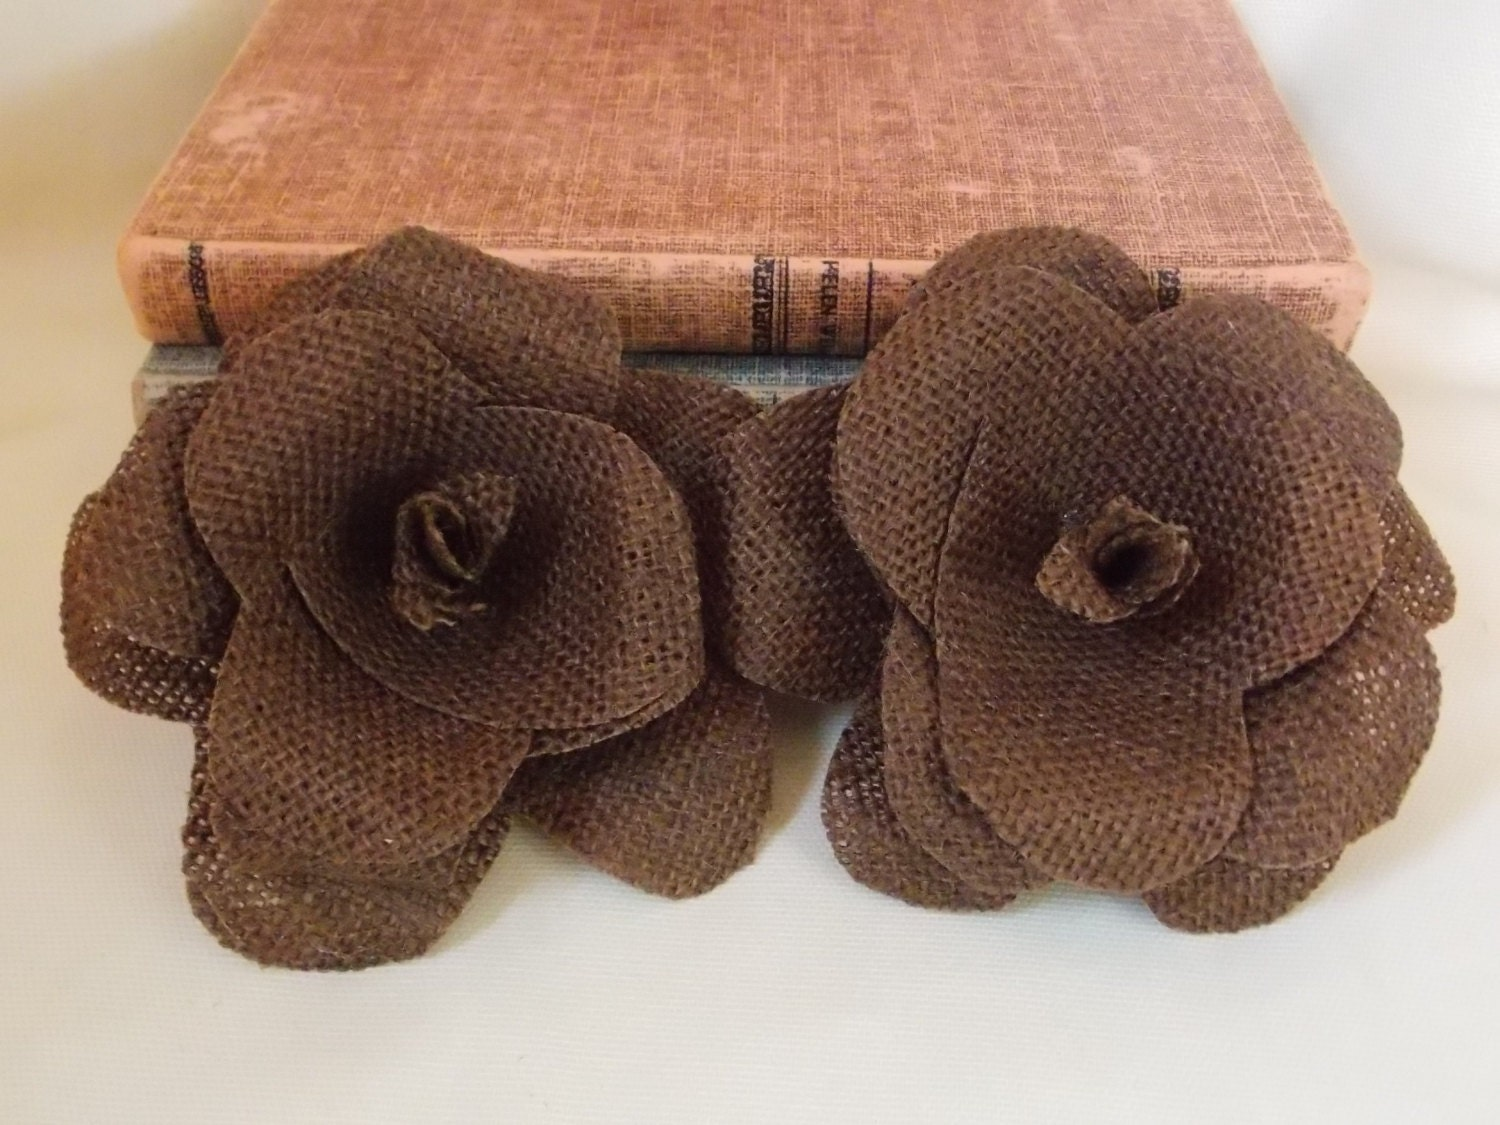 Burlap Wholesale Flowers Table Decoration Decor Country Shabby Chic Rustic Decor Home Decoration Brown Flowers Autumn Fall Decoration